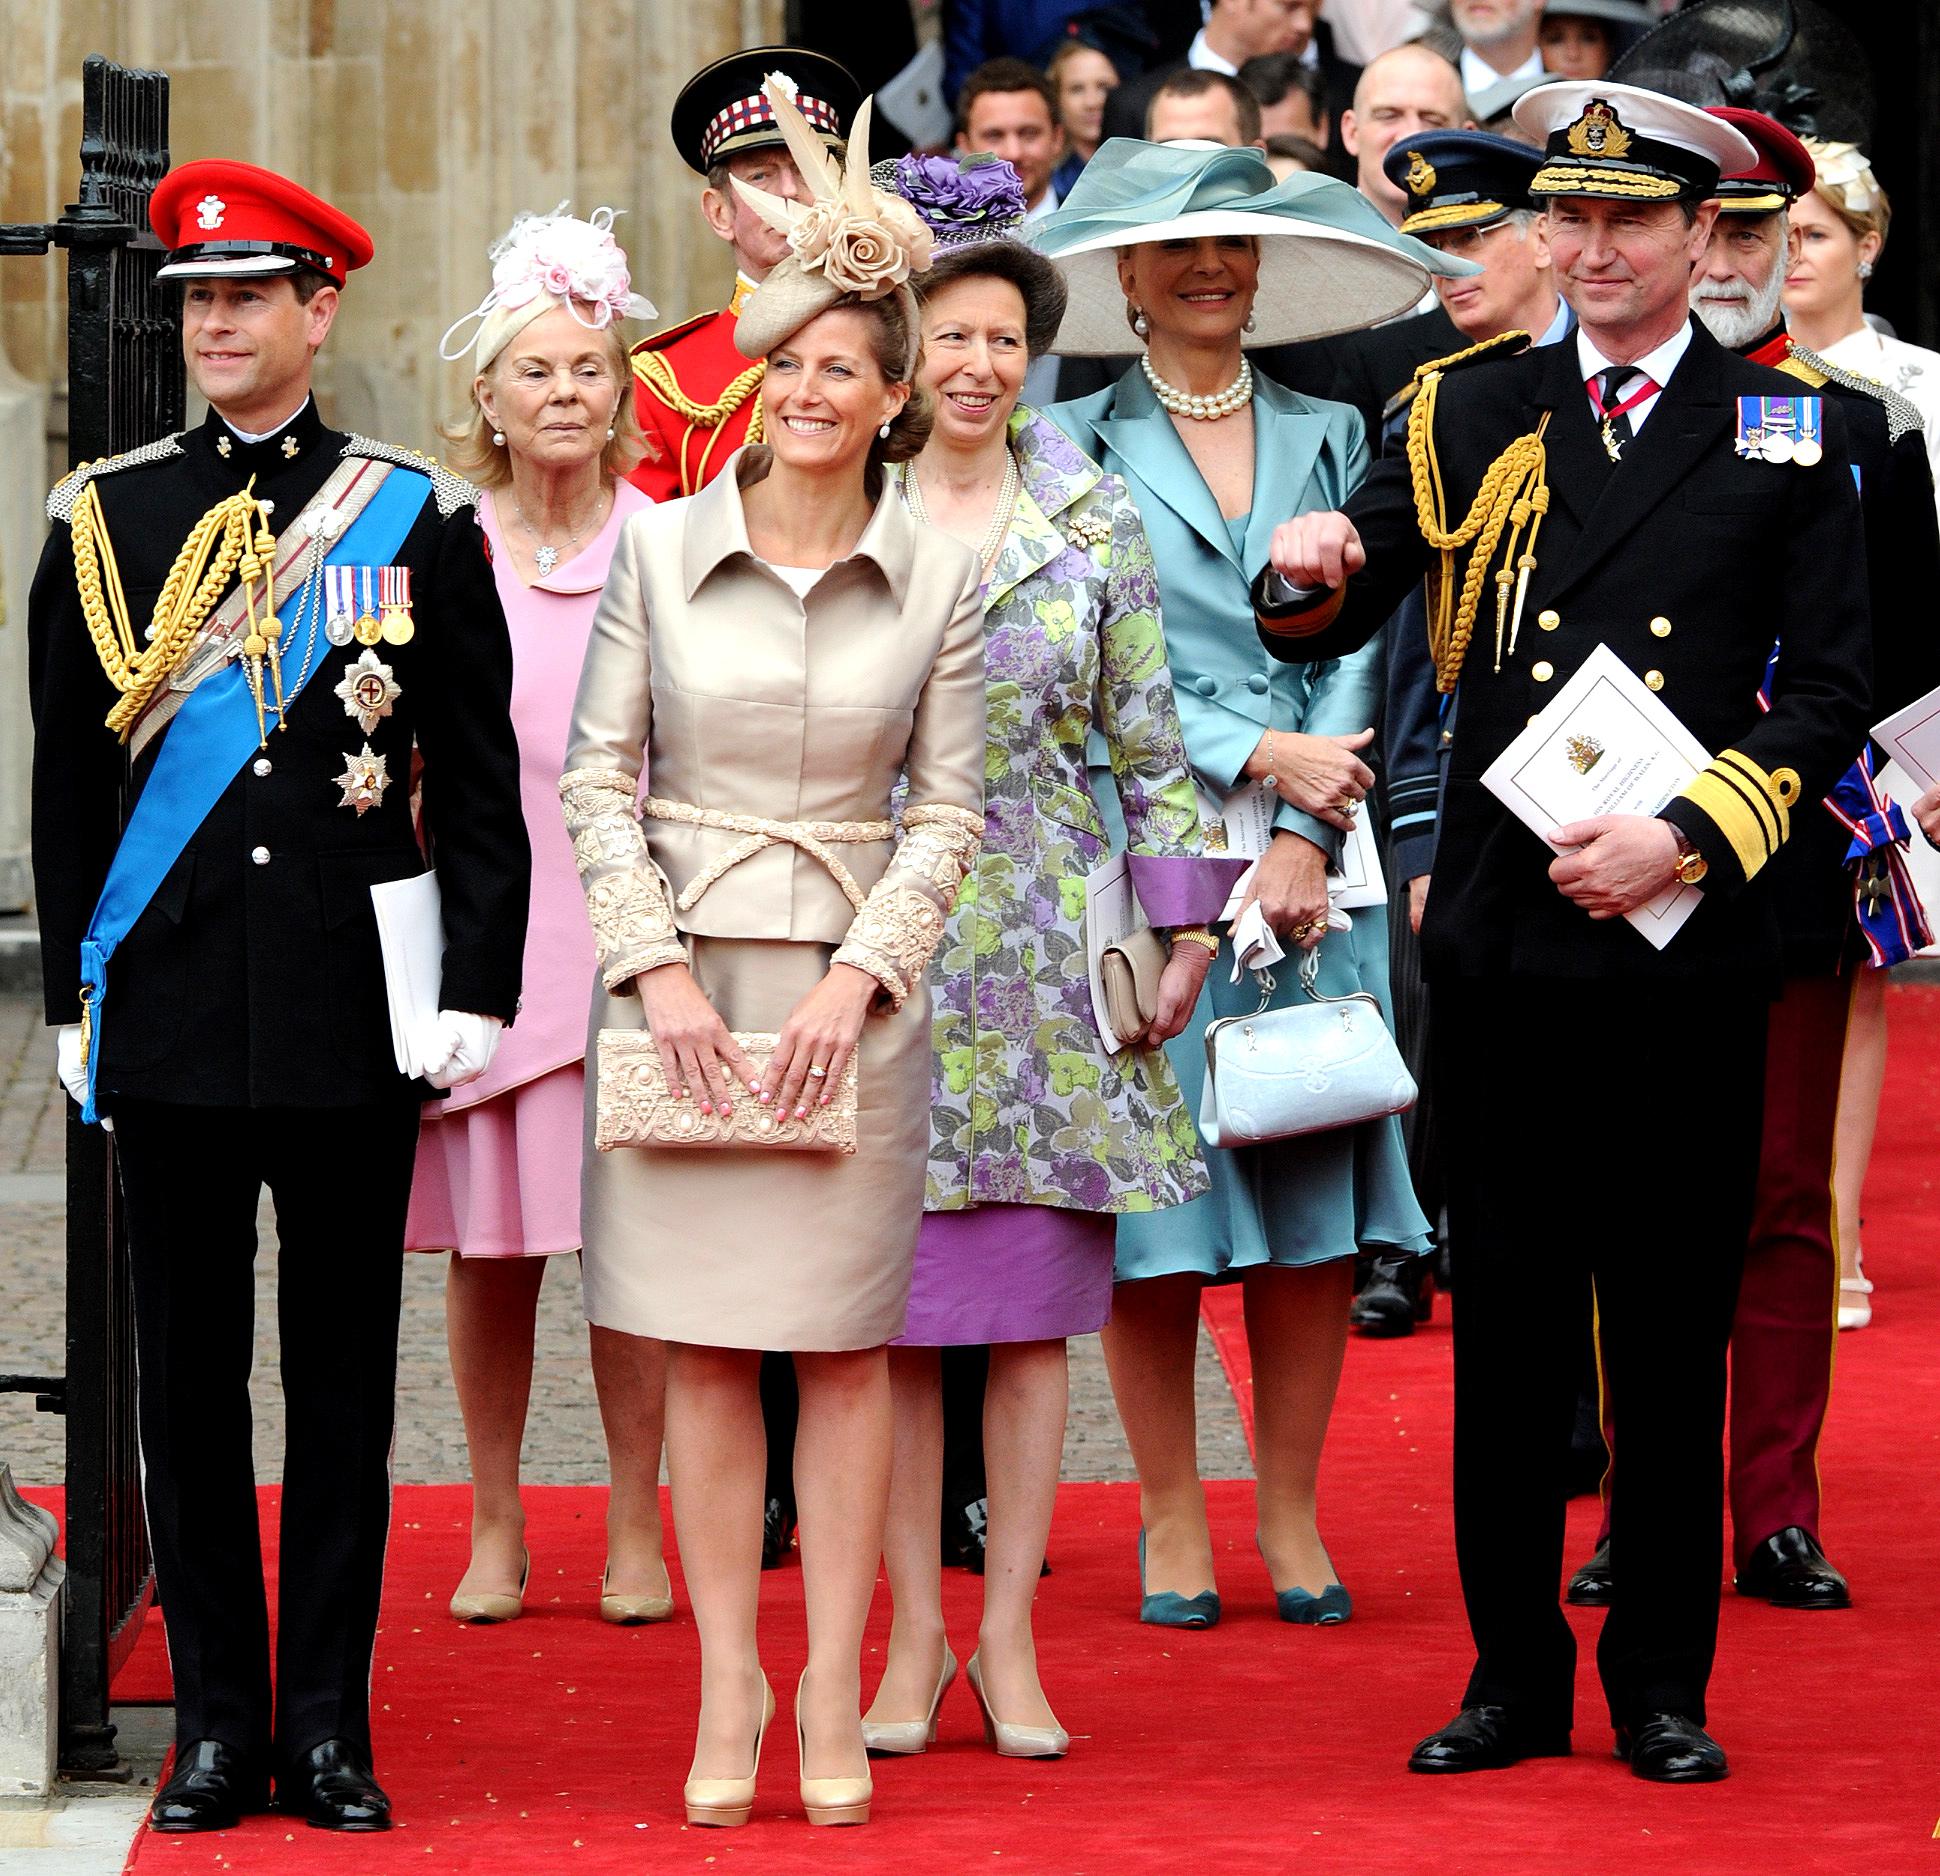 Prince Edward, Sophie, the Countess of Wessex, the Duchess of Kent, Anne, the Princess Royal , Princess Michael of Kent and the Vice-Admiral Timothy Laurence